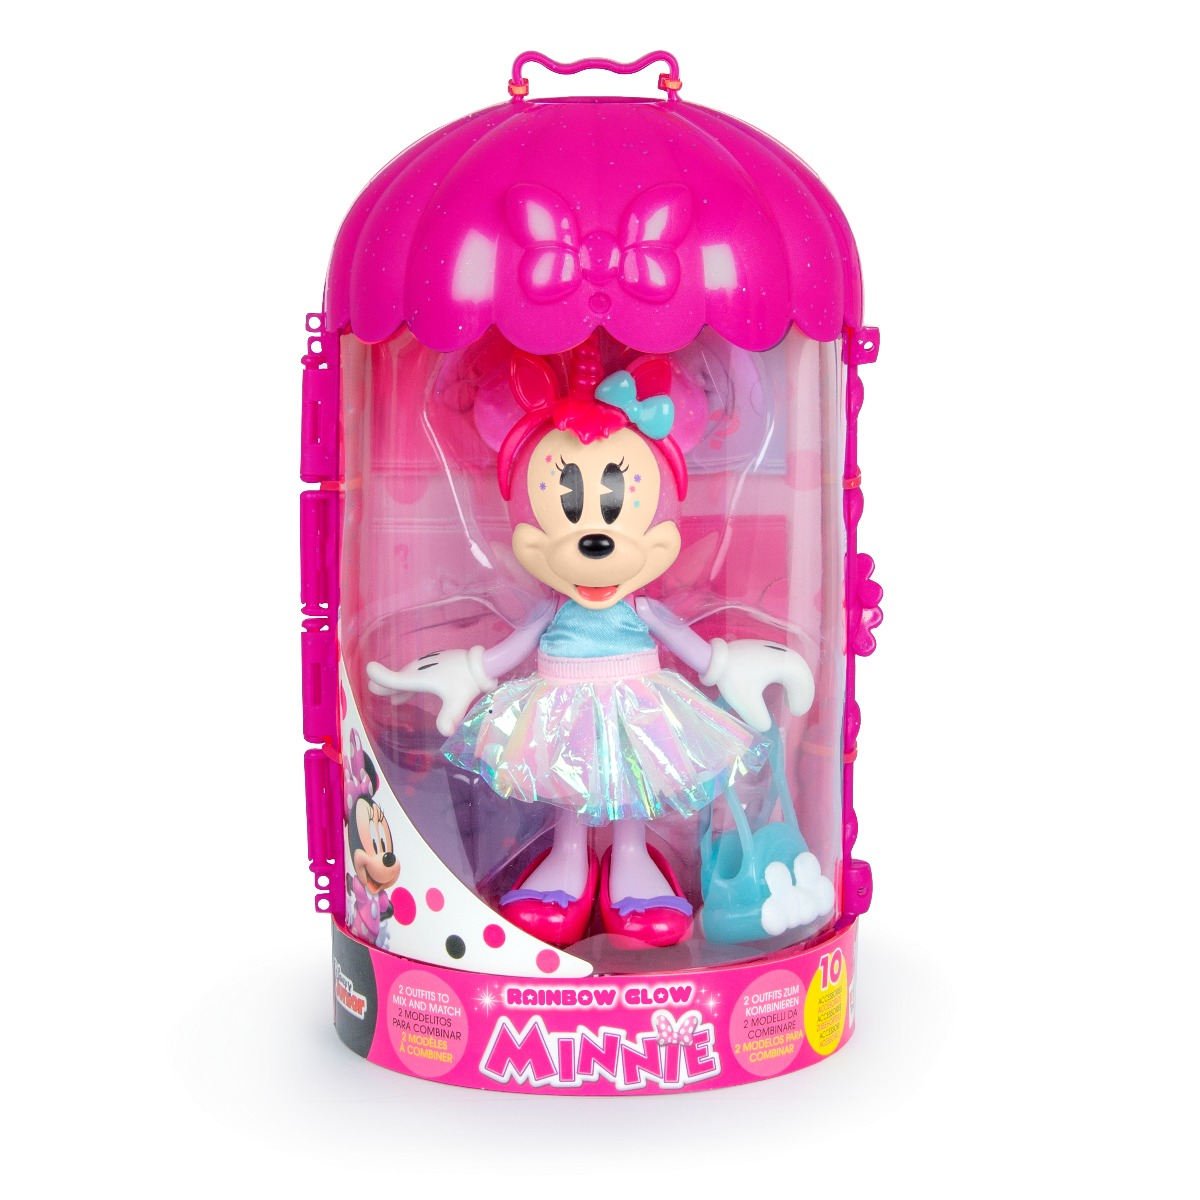 Figurina cu accesorii Disney Minnie Mouse, Rainbow Glow, W4 imagine 2021